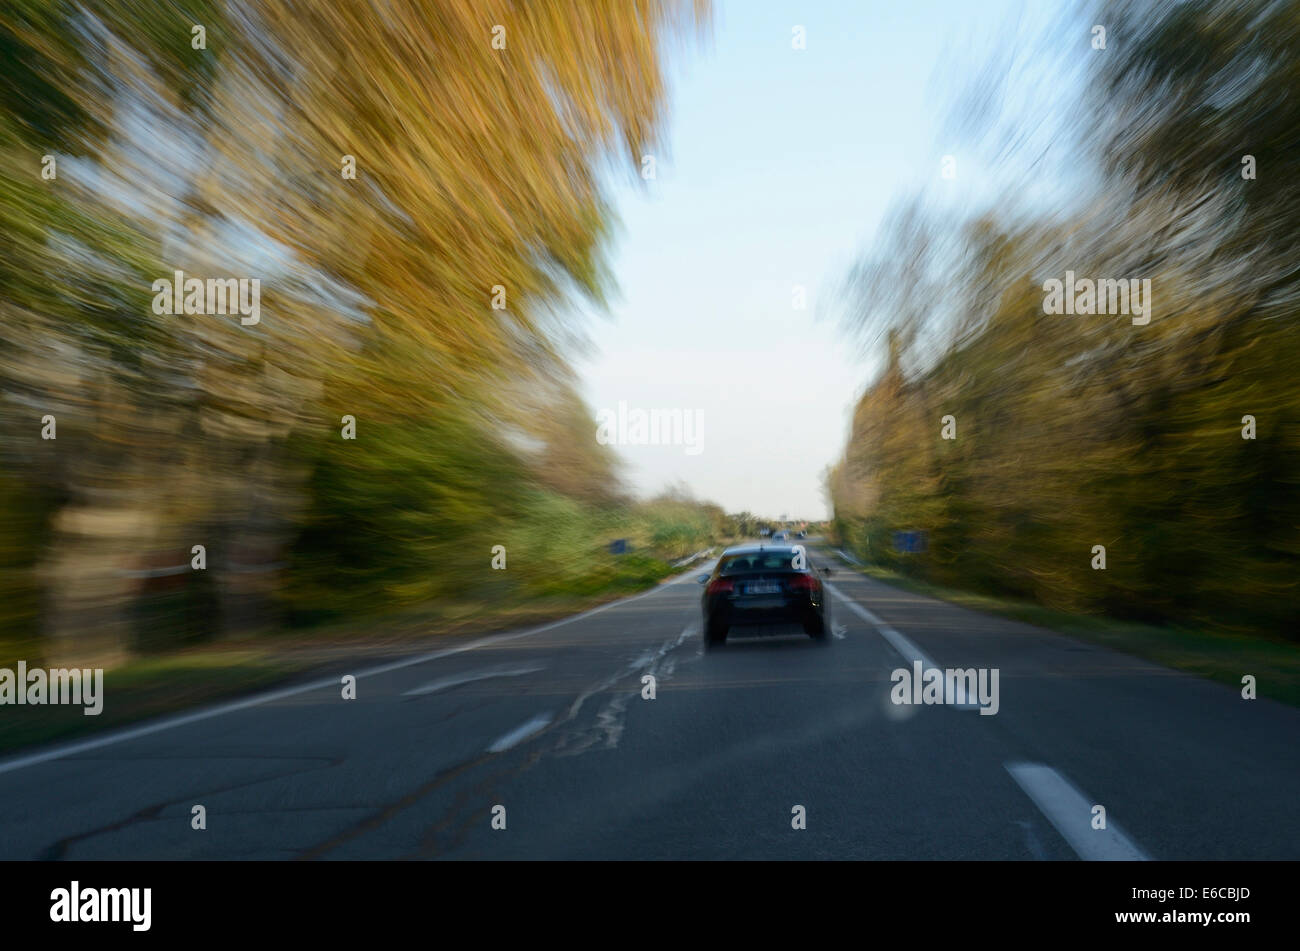 Car driving on a country road - Stock Image